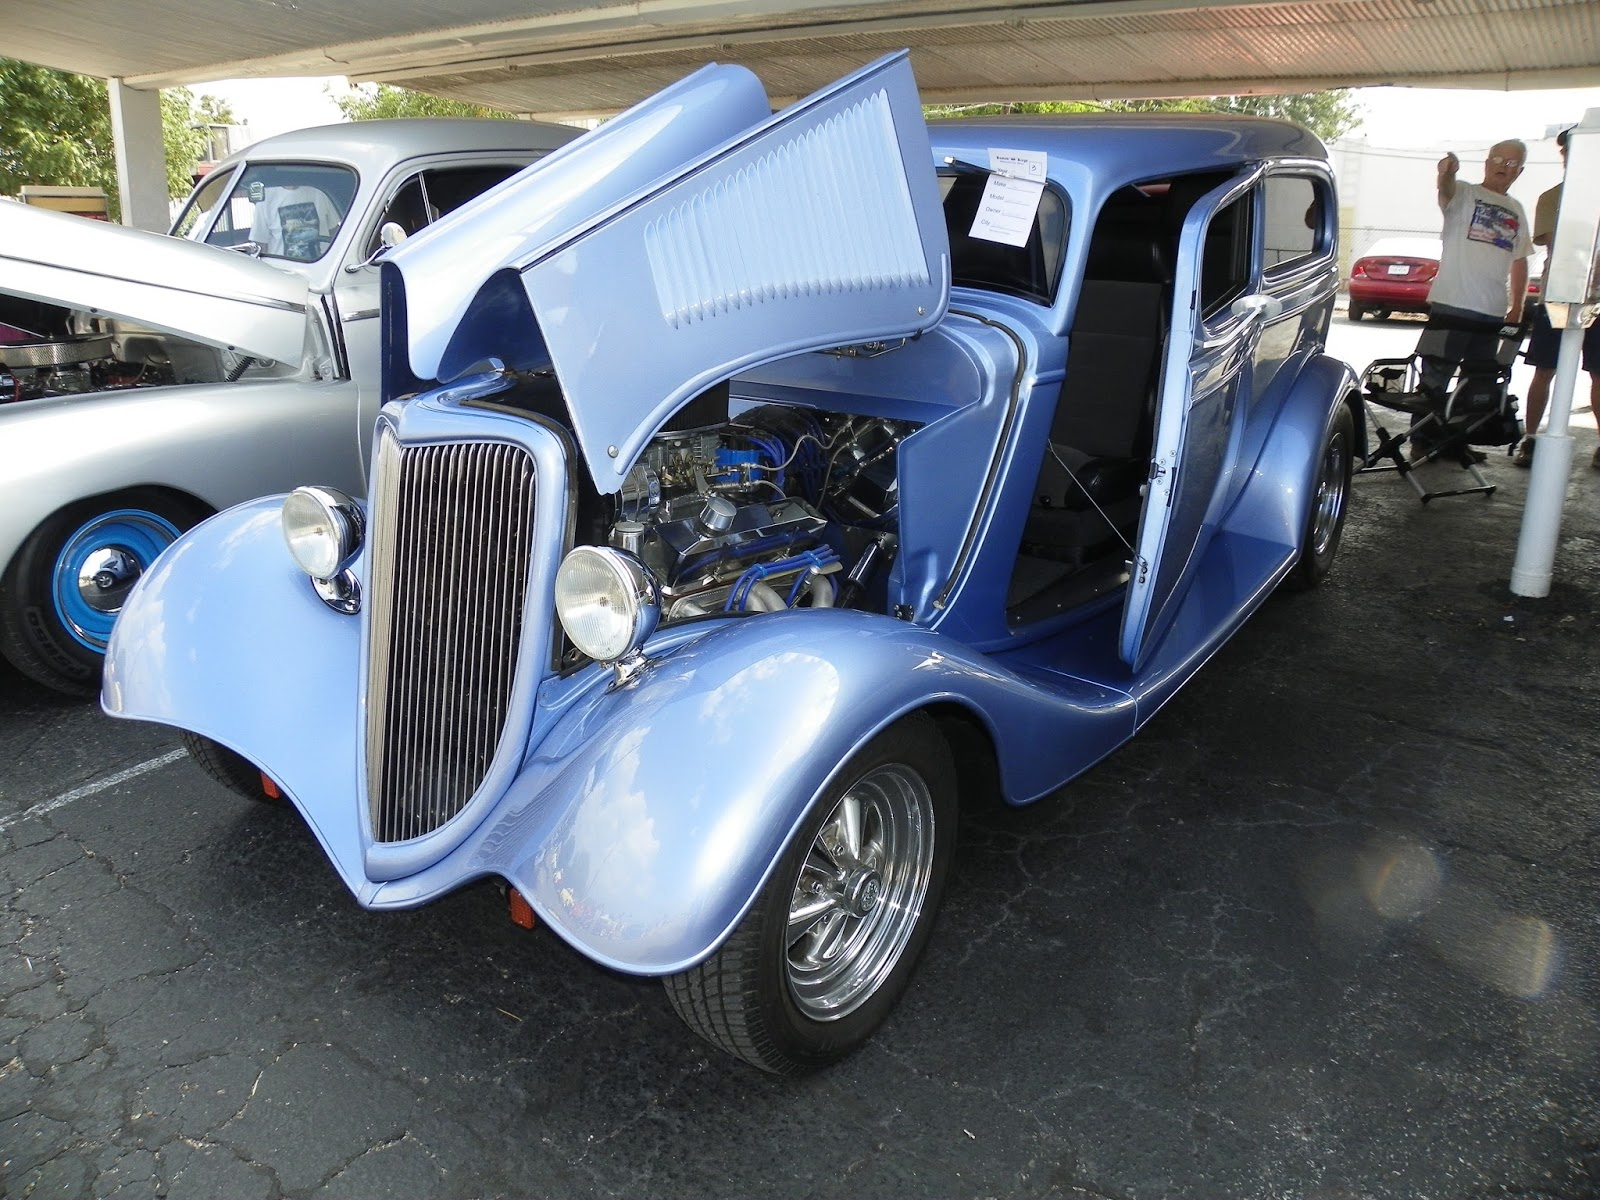 Underdog\'s Utterings: Old Cars on Display at Denison Car Show